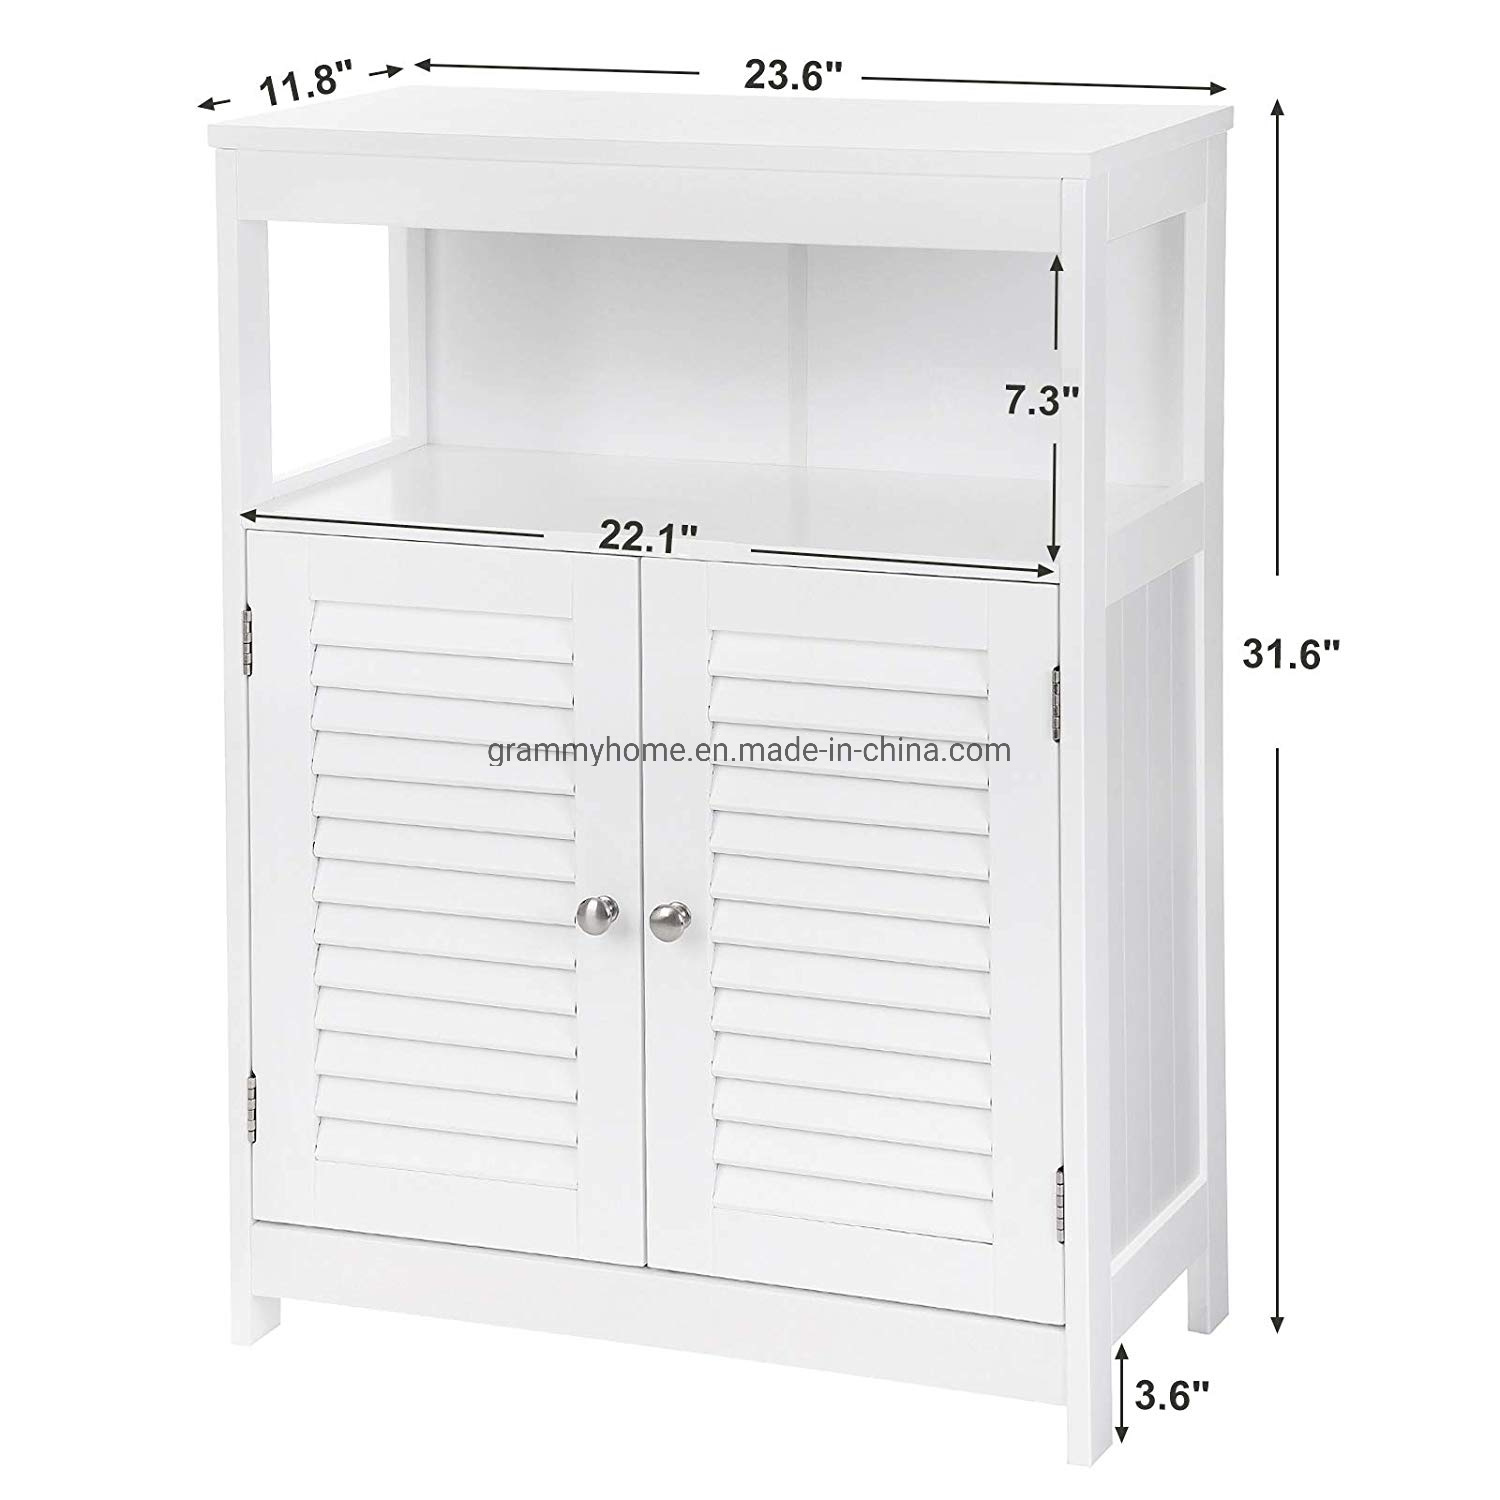 China Bathroom Cabinet Storage Floor Cabinet Free Standing With Double Shutter Door And Adjustable Shelf Photos Pictures Made In China Com